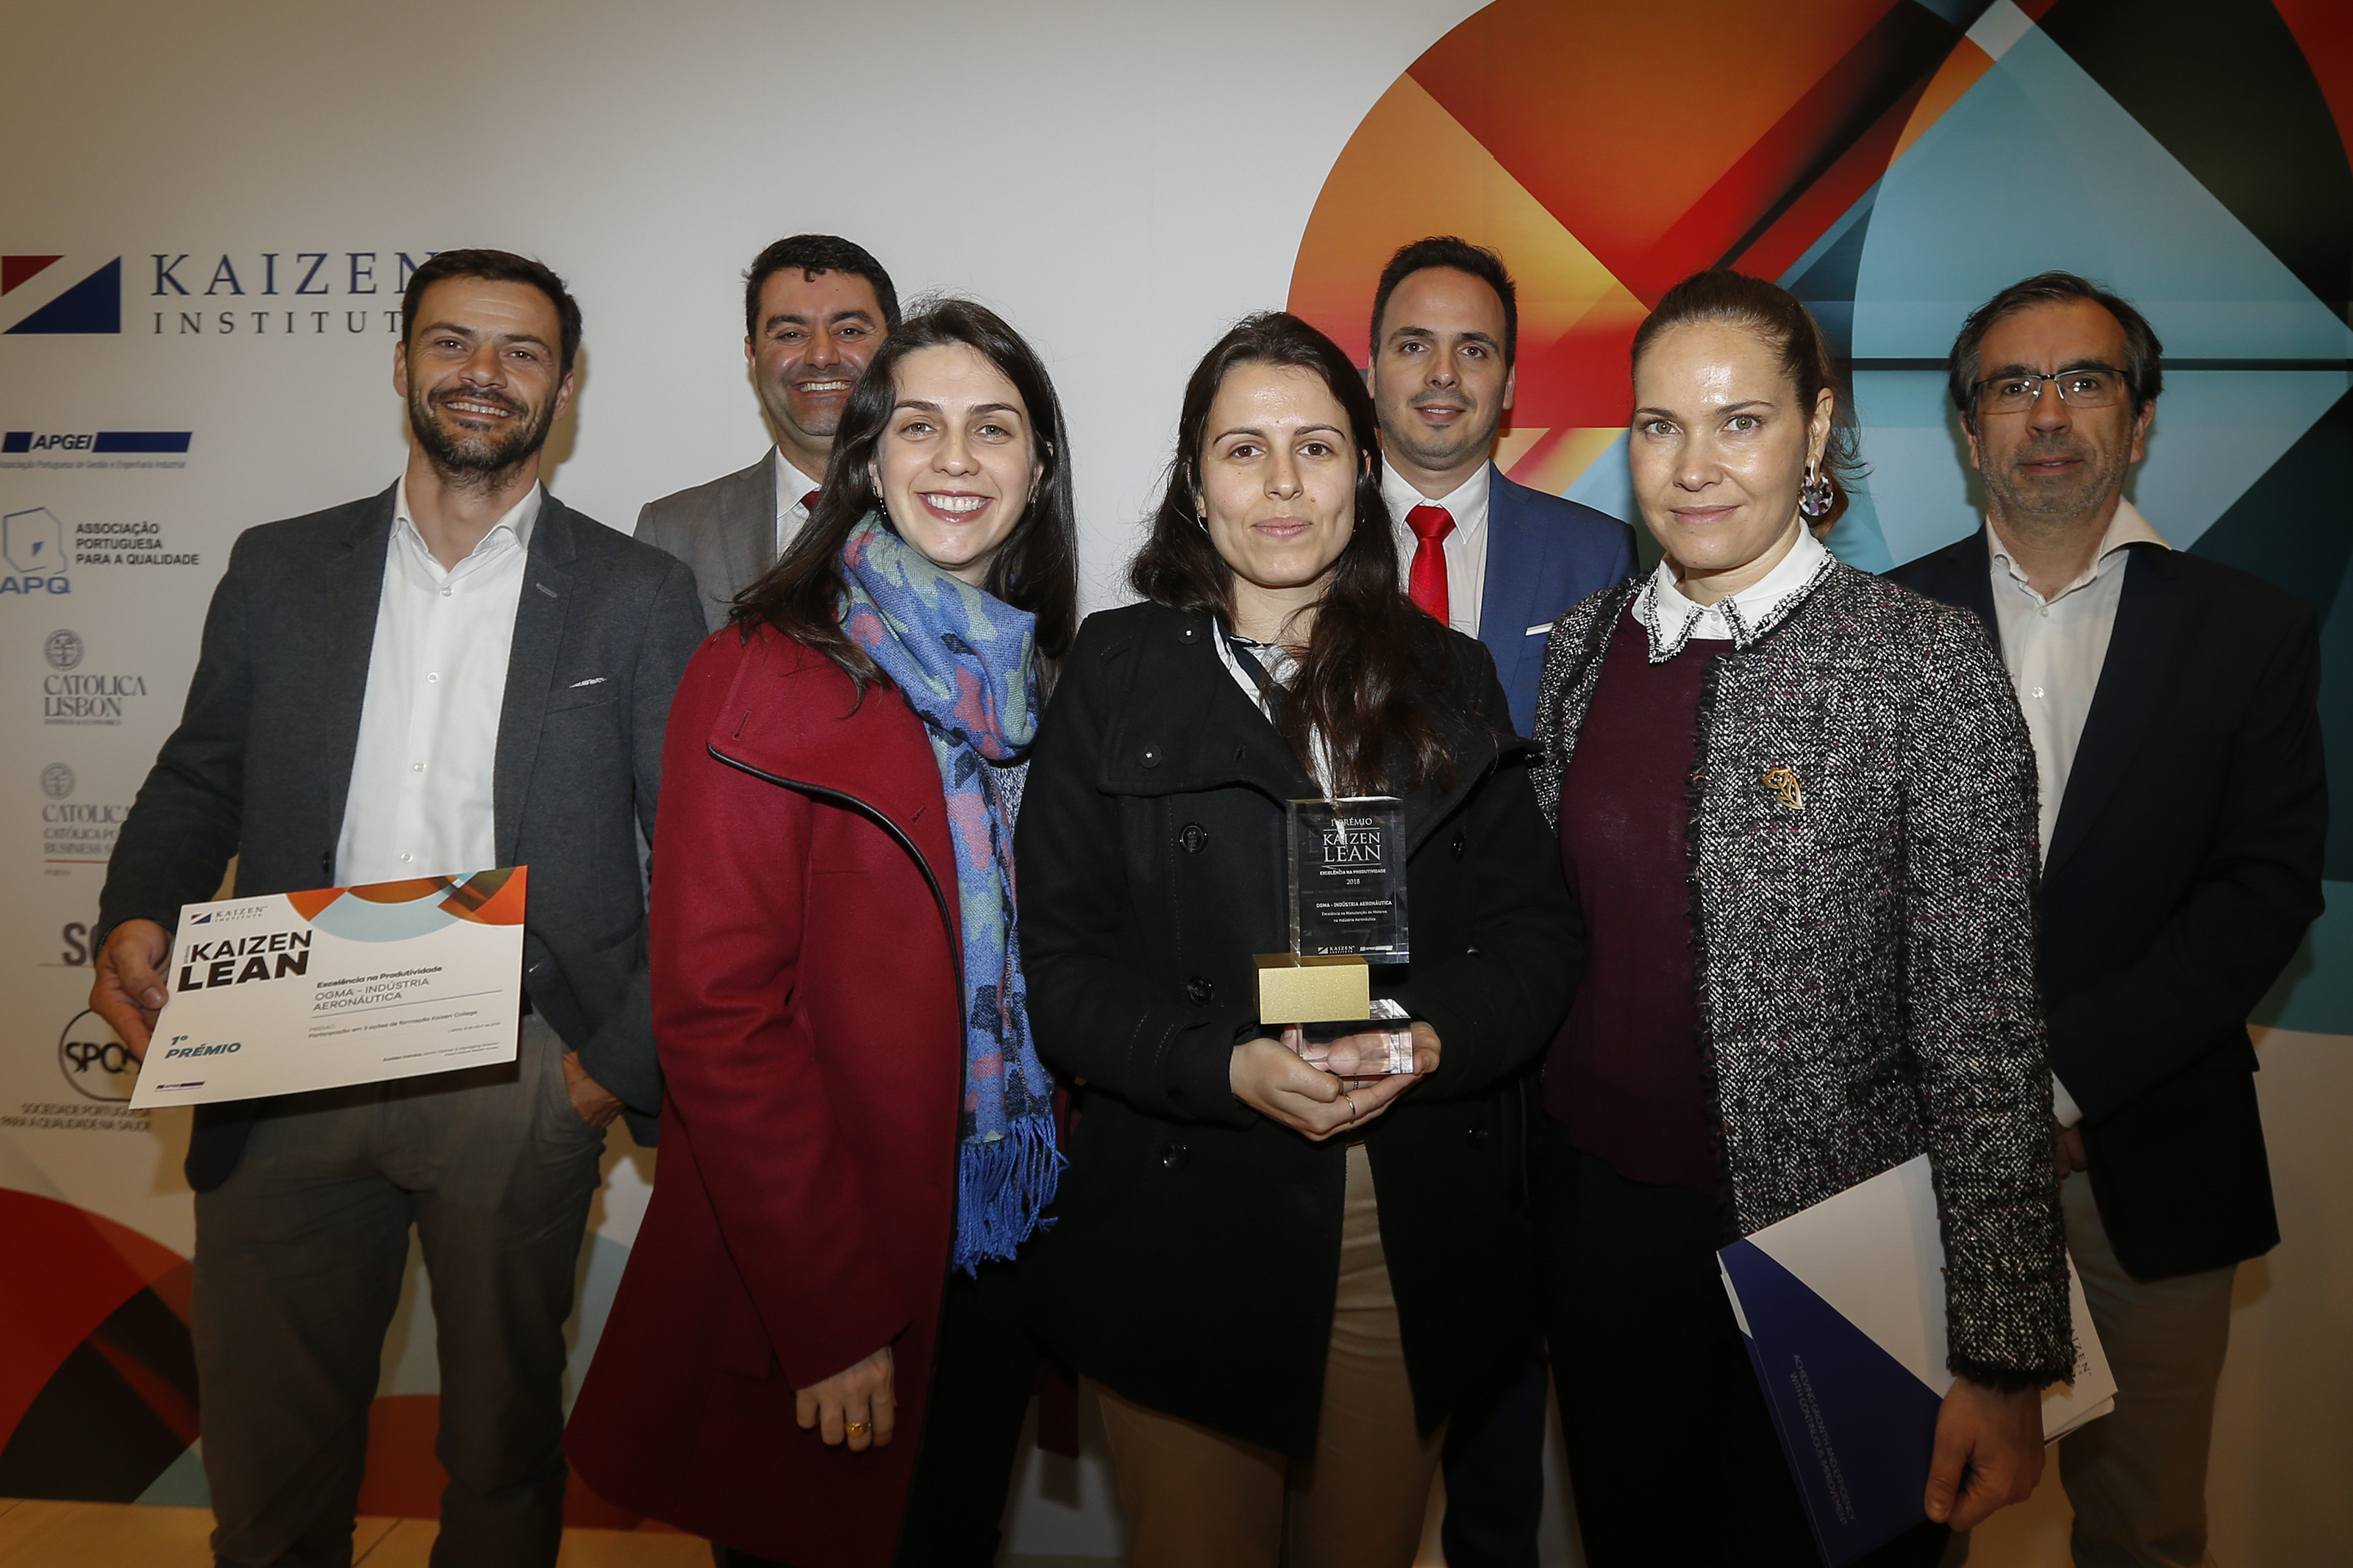 Kaizen Institute Portugal awarded Ogma with the Premio KAIZEN™ Lean Portugal 2018, Category: Excellence in Productivity